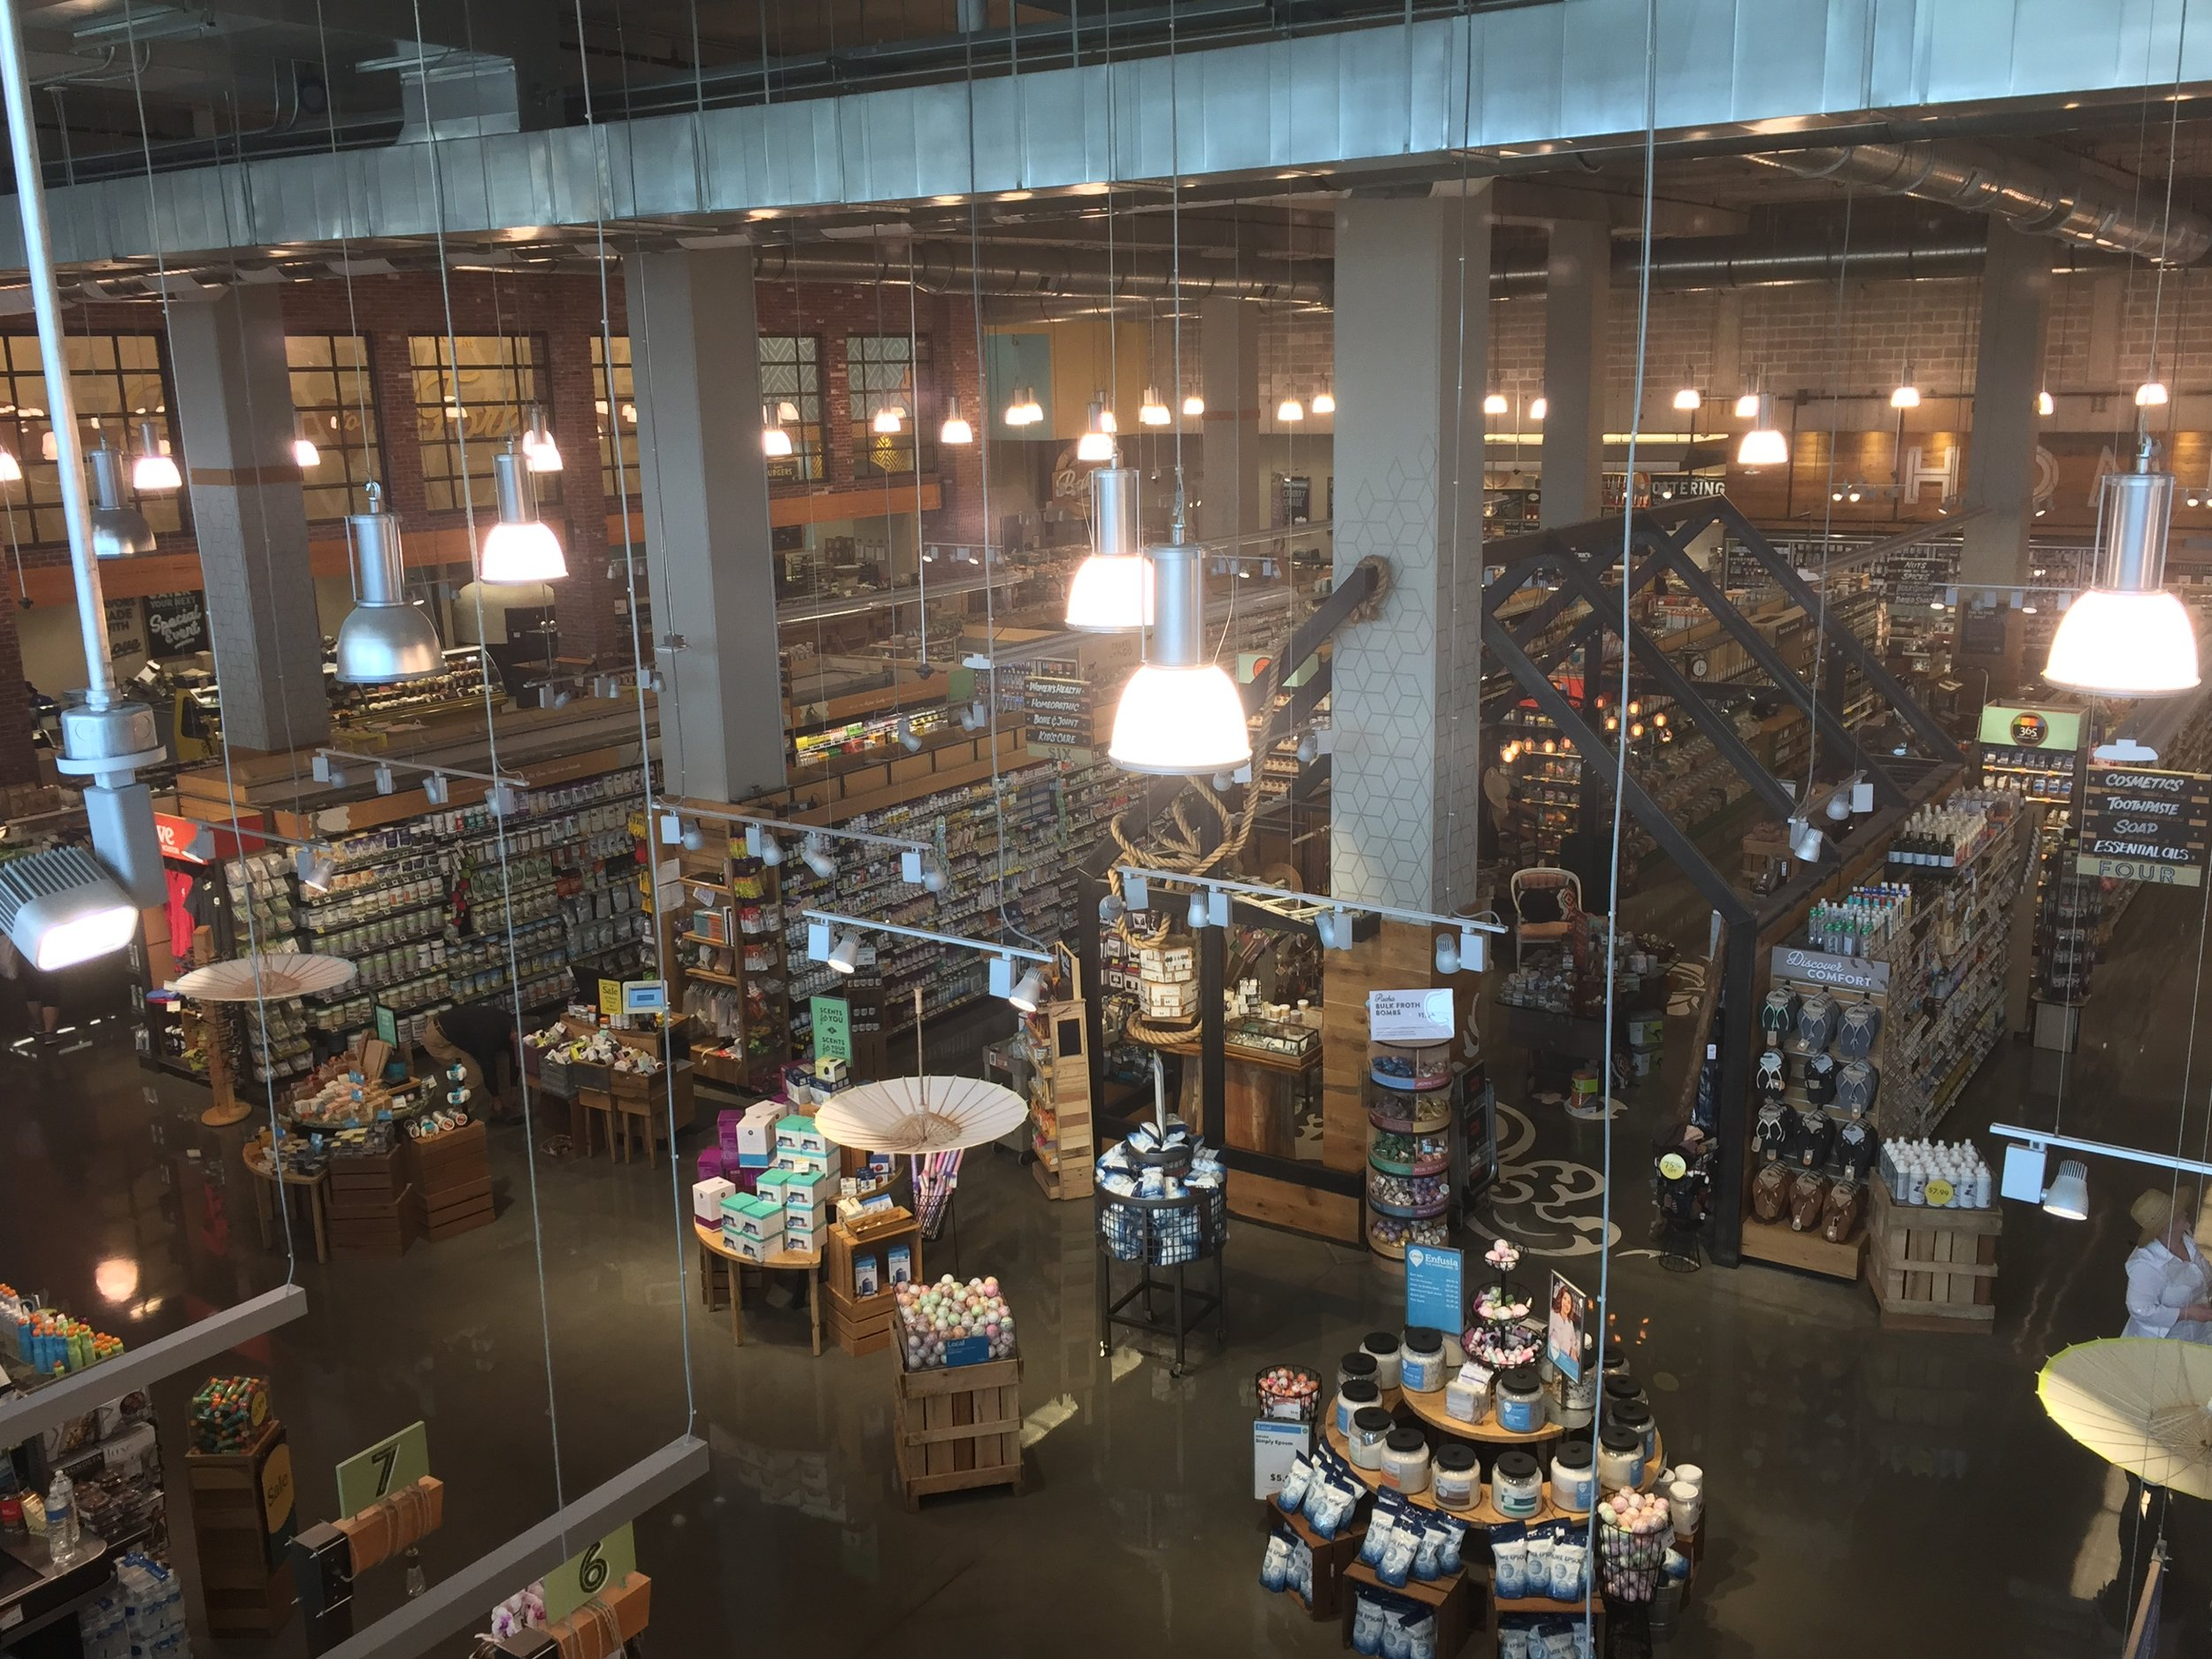 Whole Foods Market in Houston, Texas